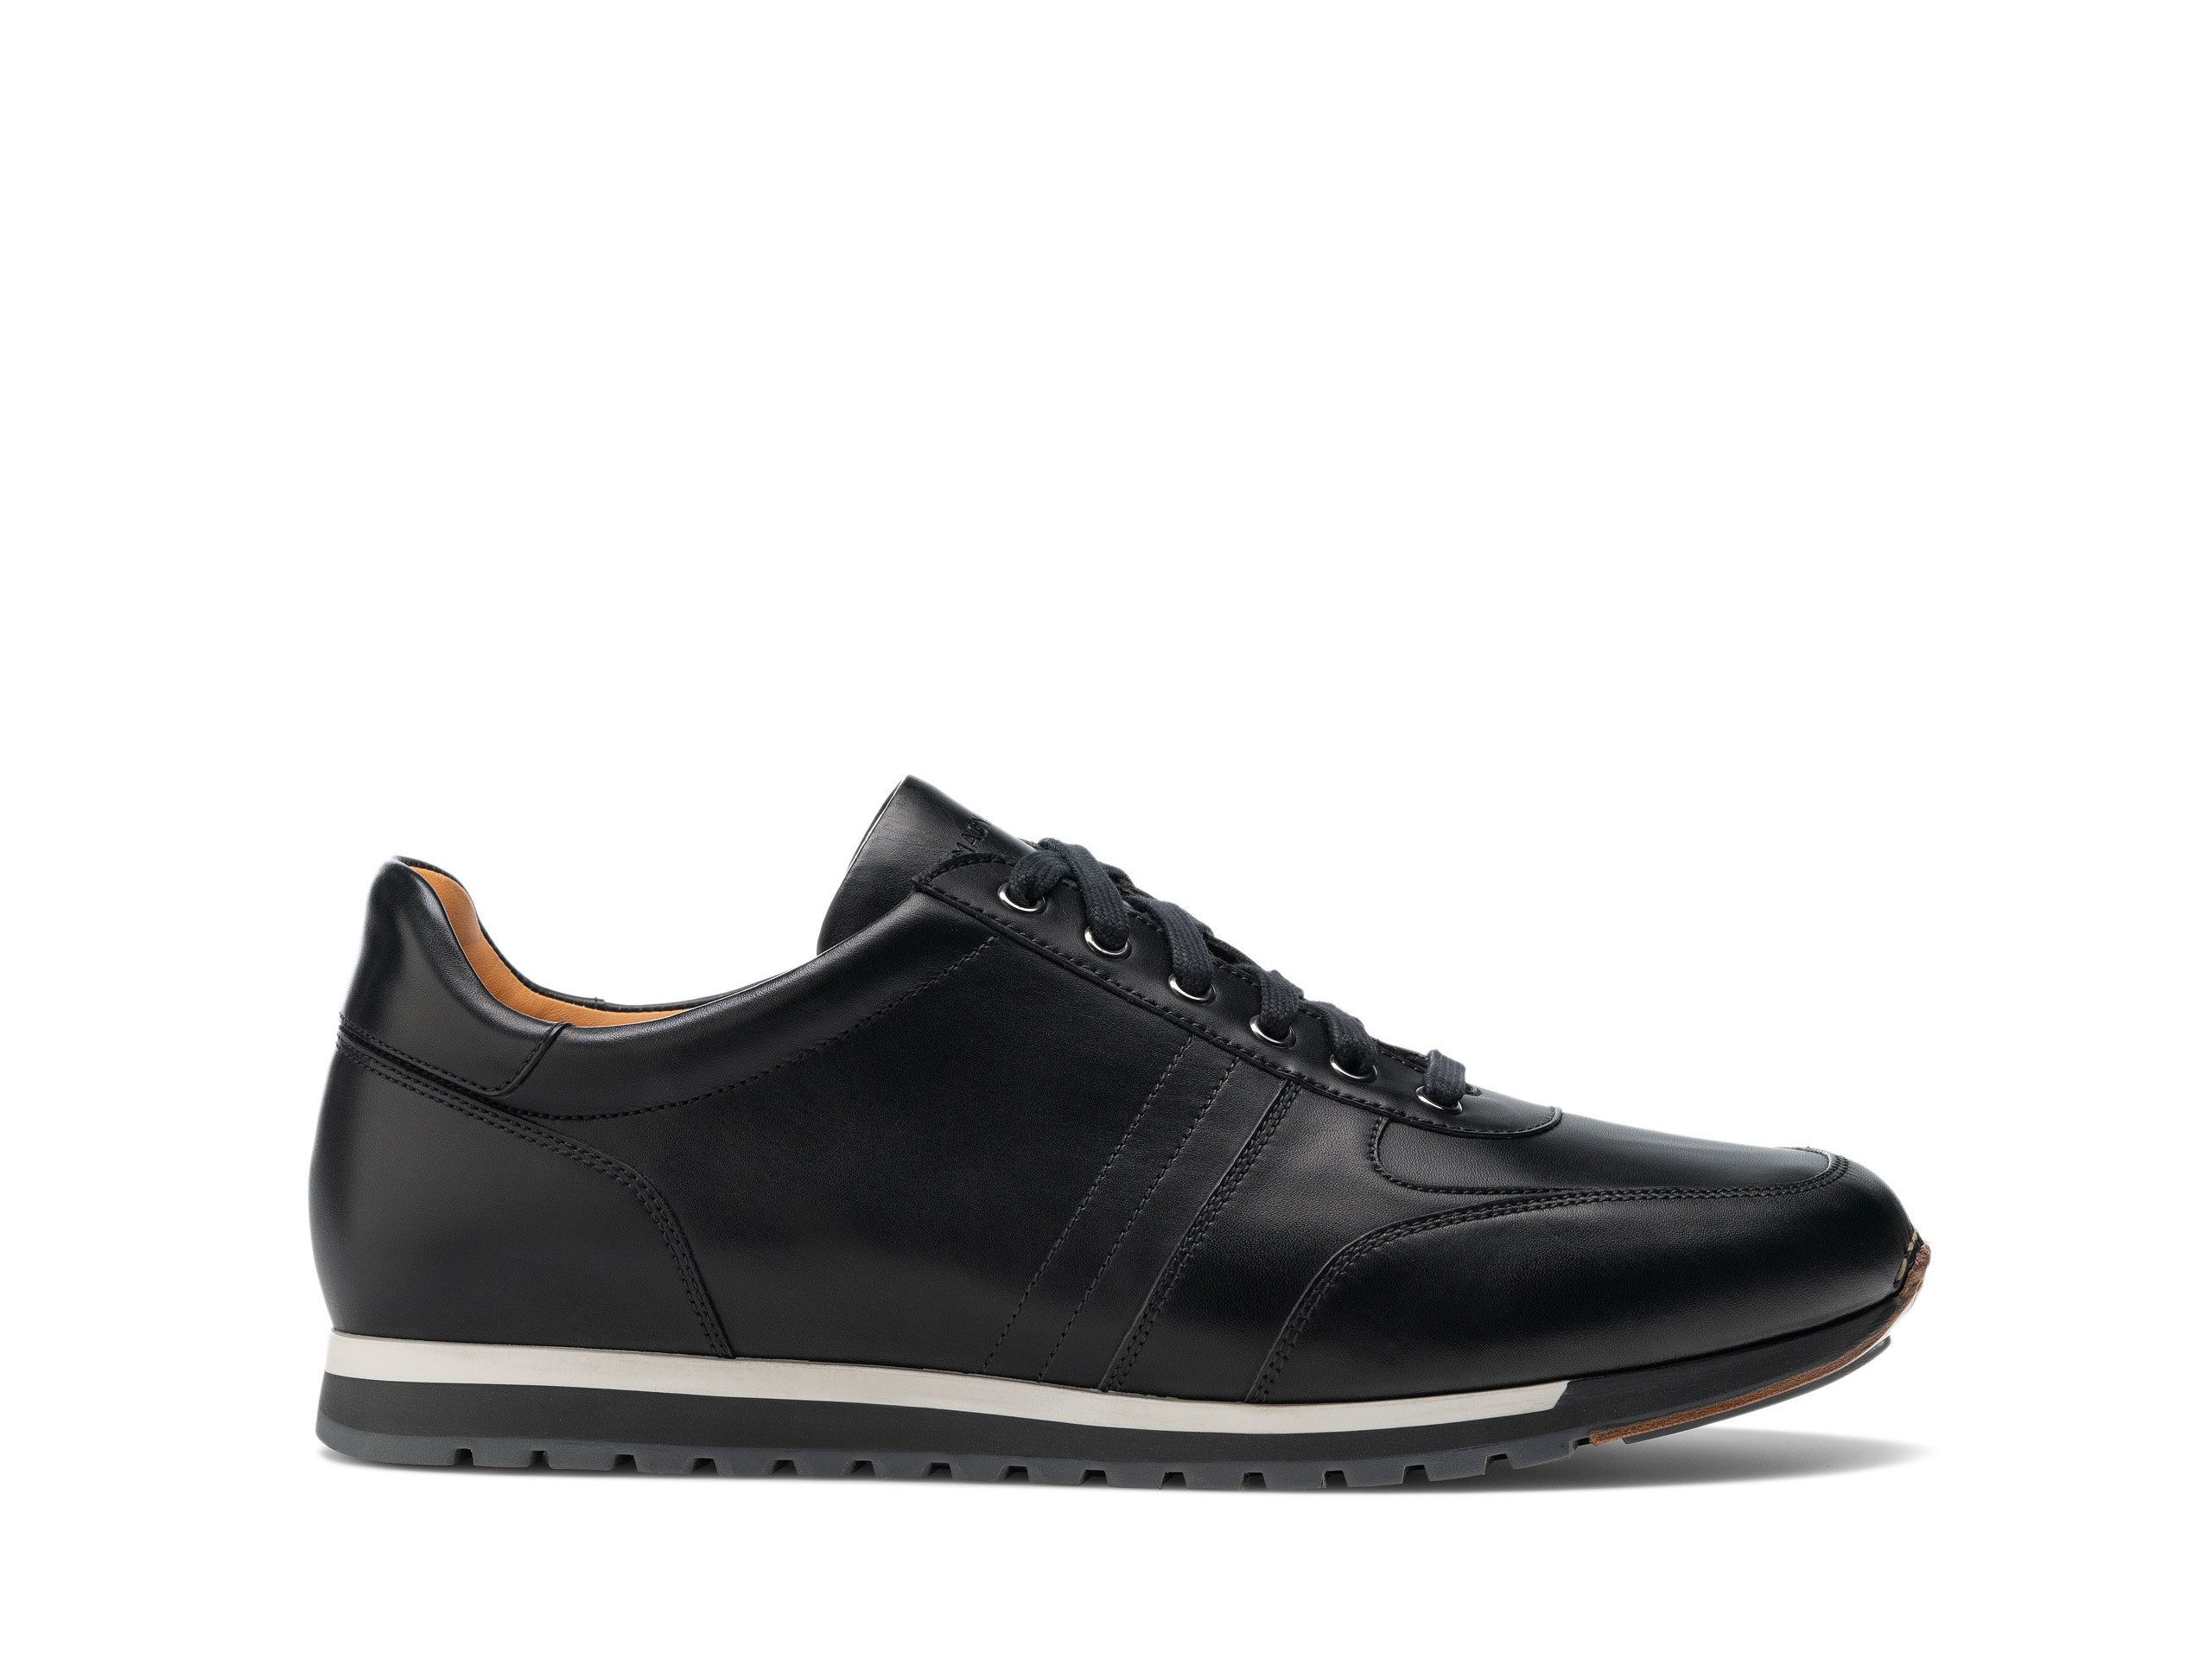 Side view of the Magnanni Ibiza Black Men's Sneakers